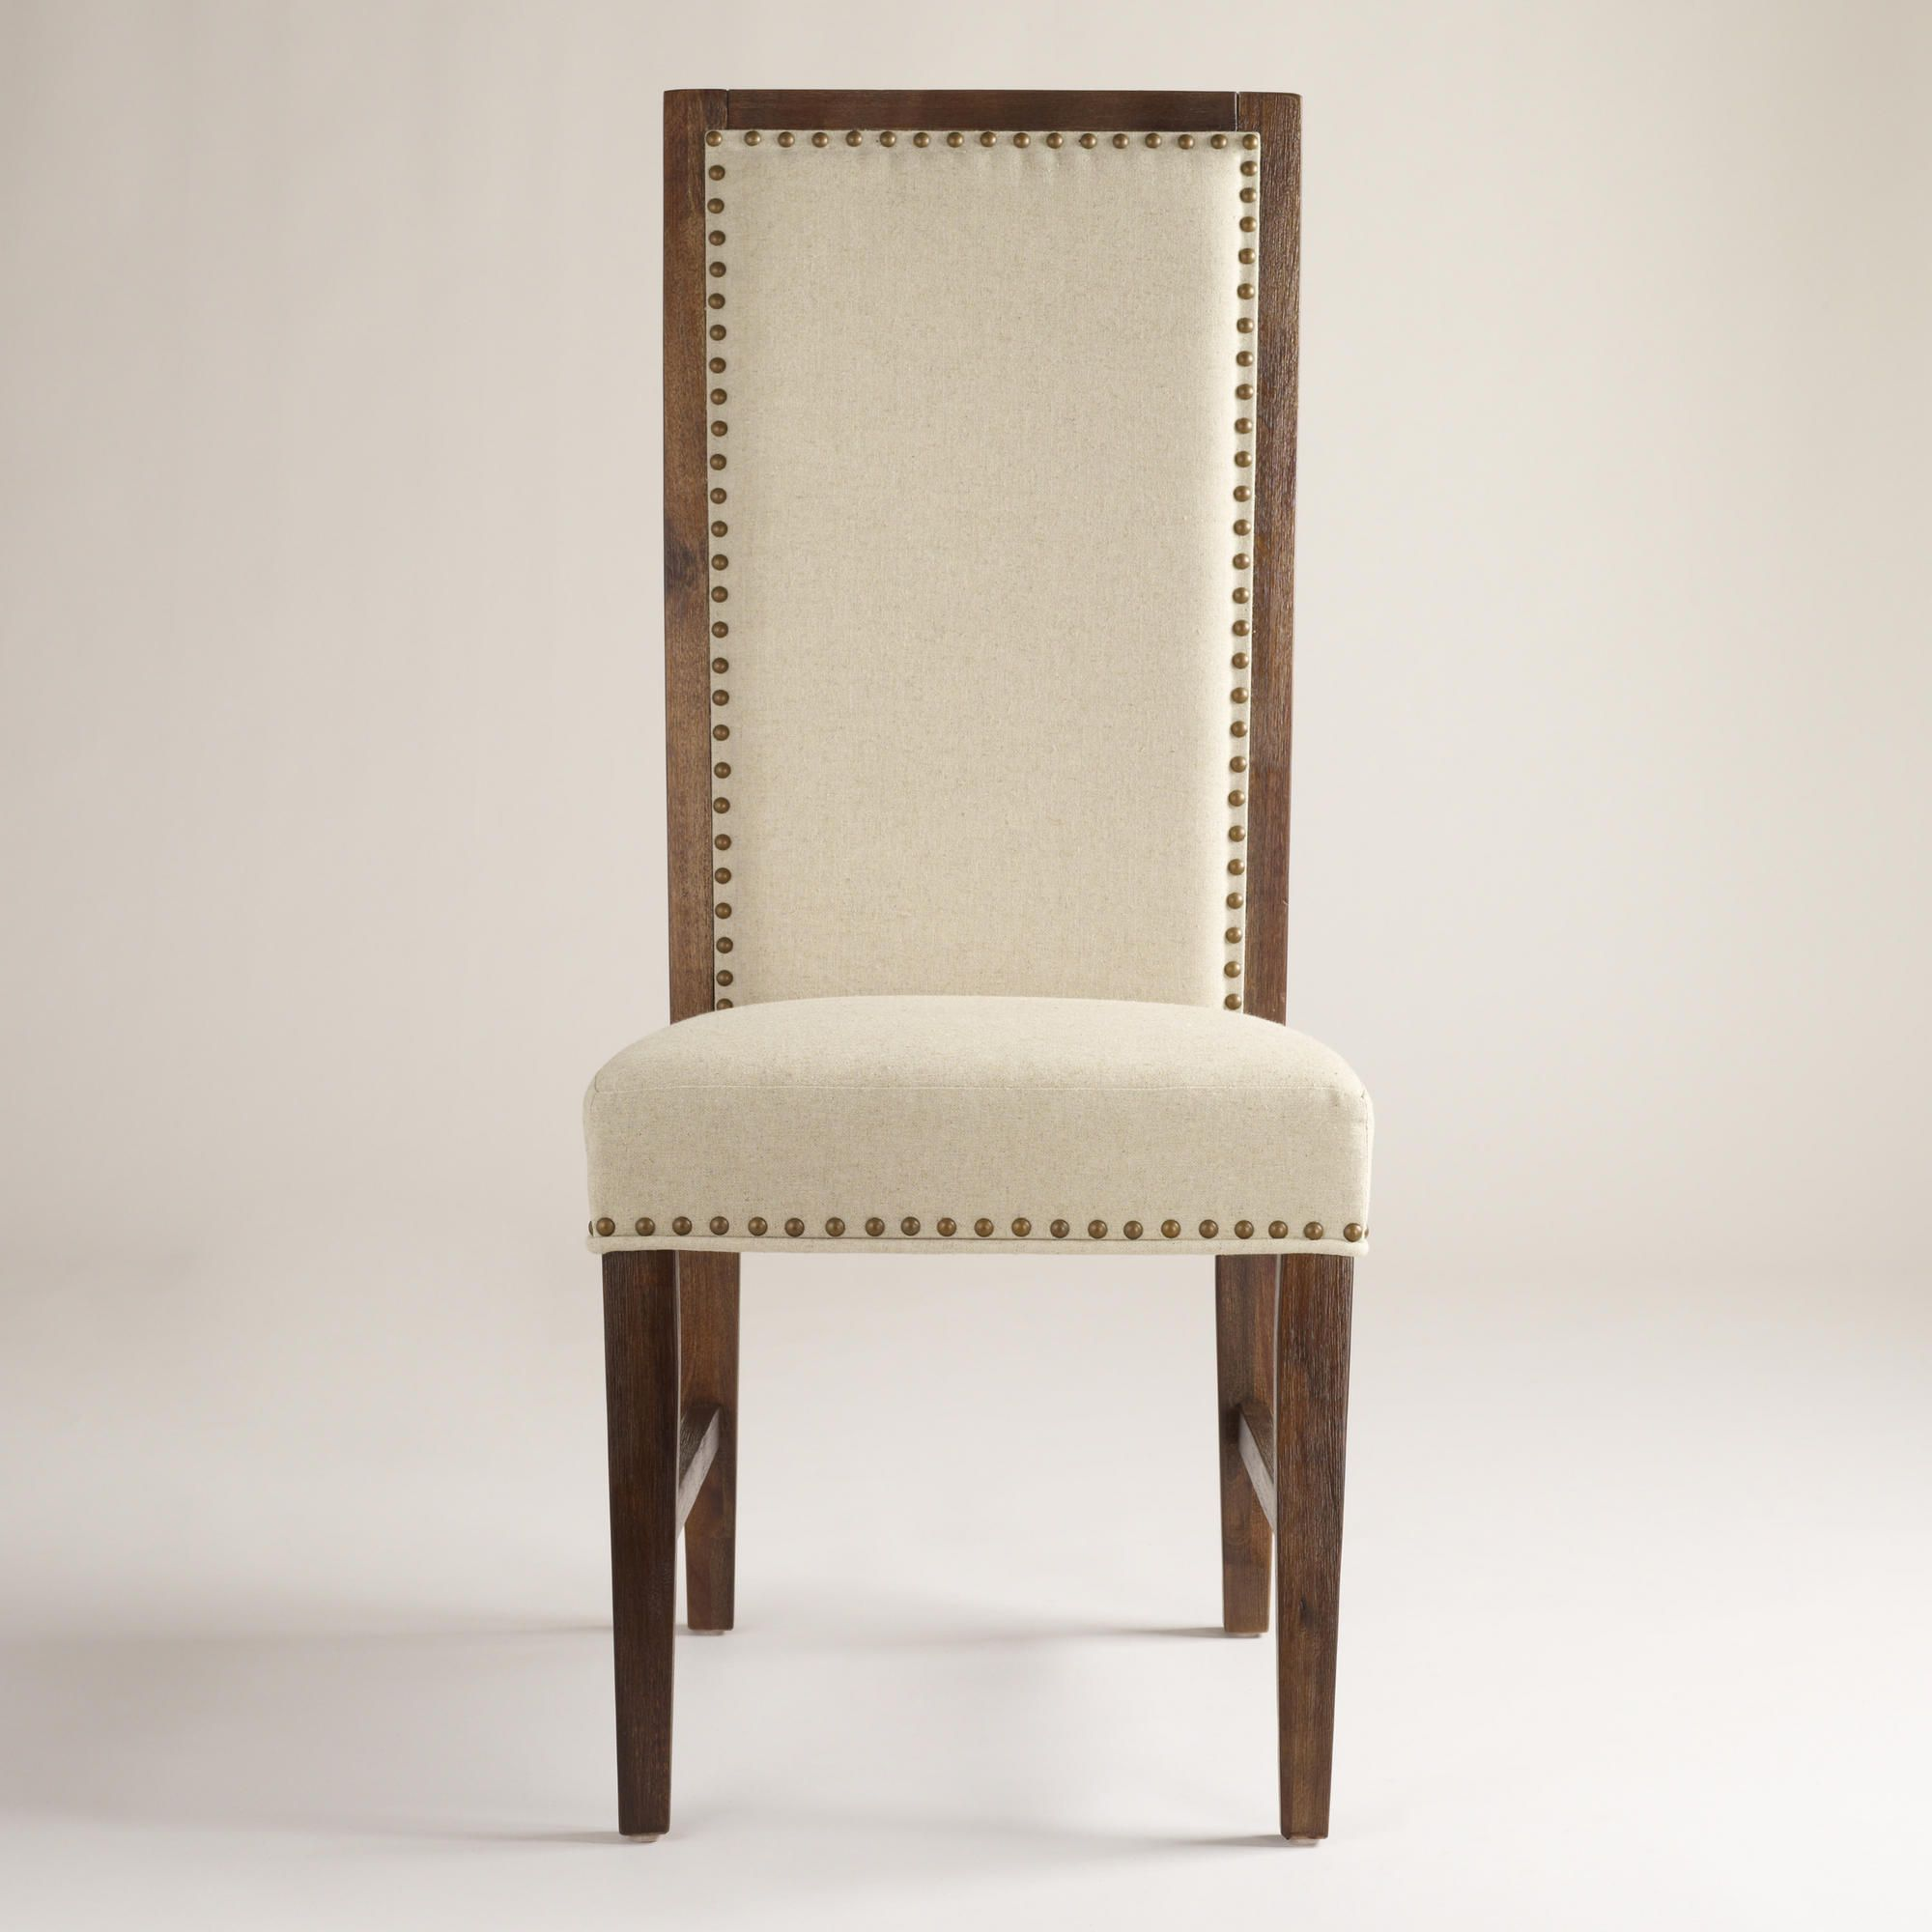 Greyson Chairs With Nailheads Set Of 2 Greyson Chairs With